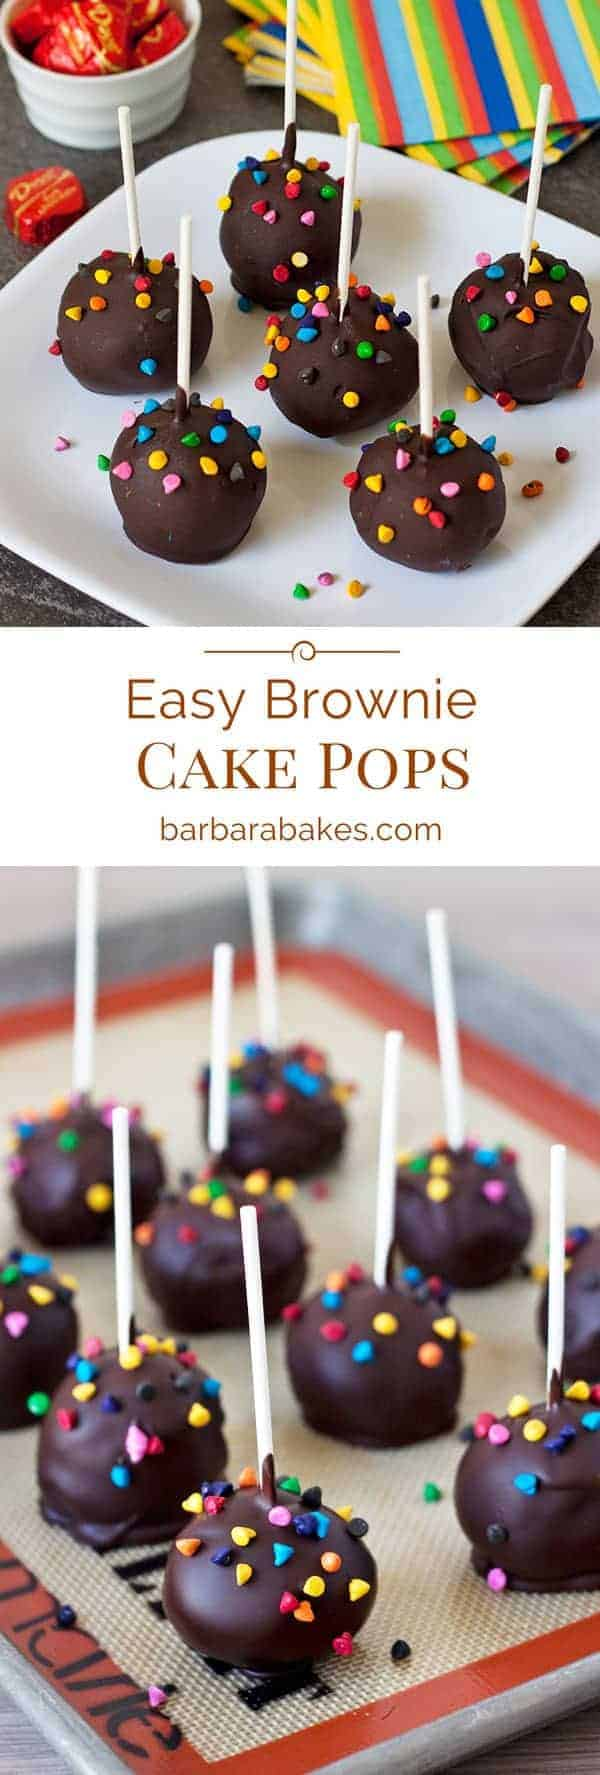 Easy-Brownie-Cake-Pops-Pinterest-Collage